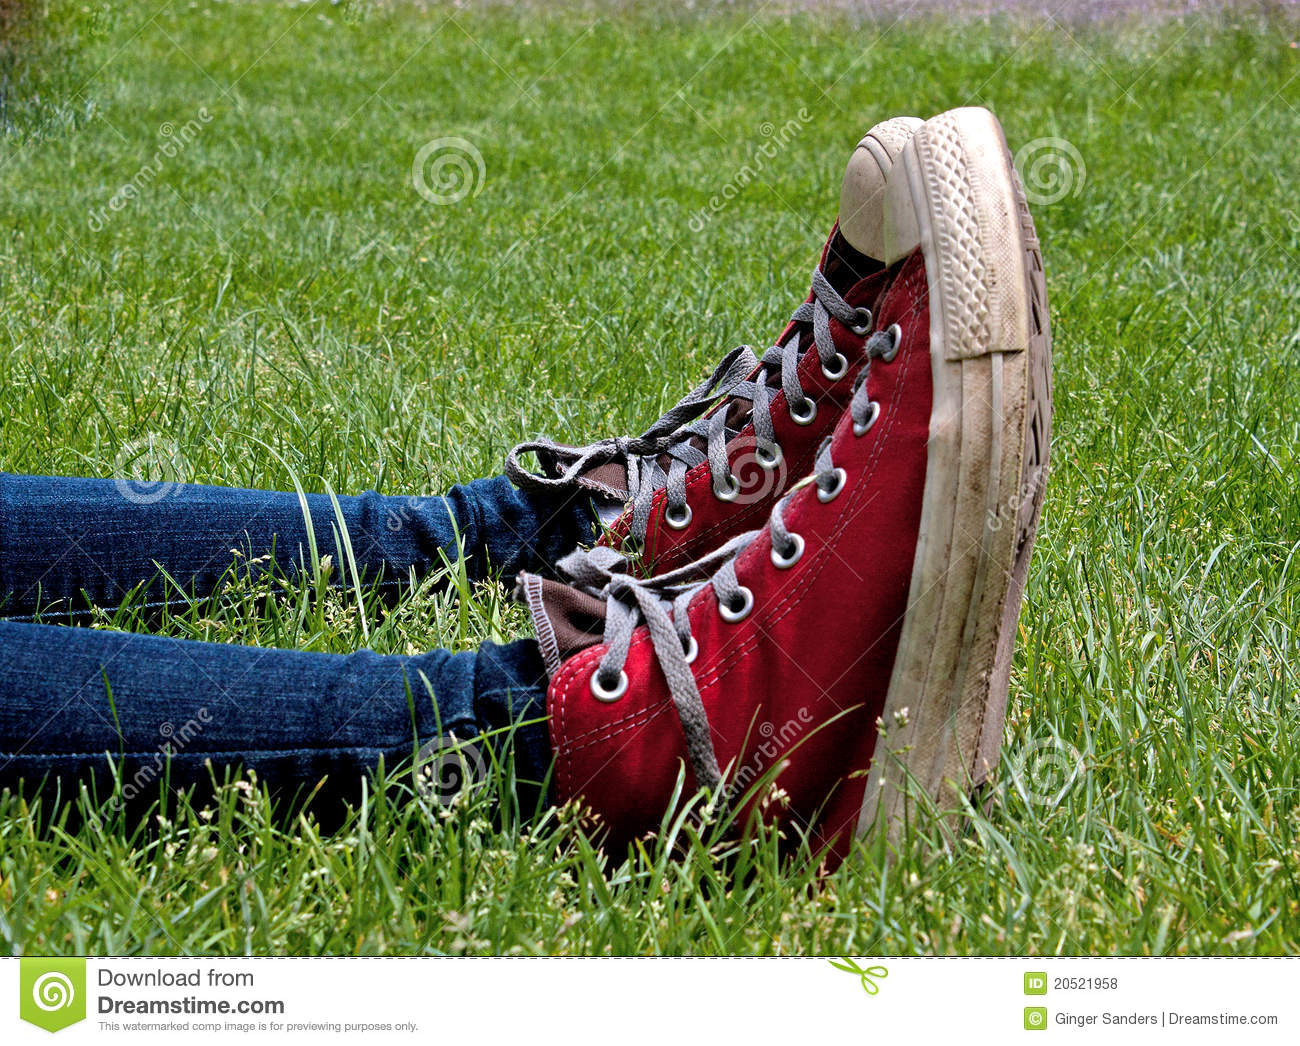 Parallel Red High Top Tennis Shoes in Green Grass